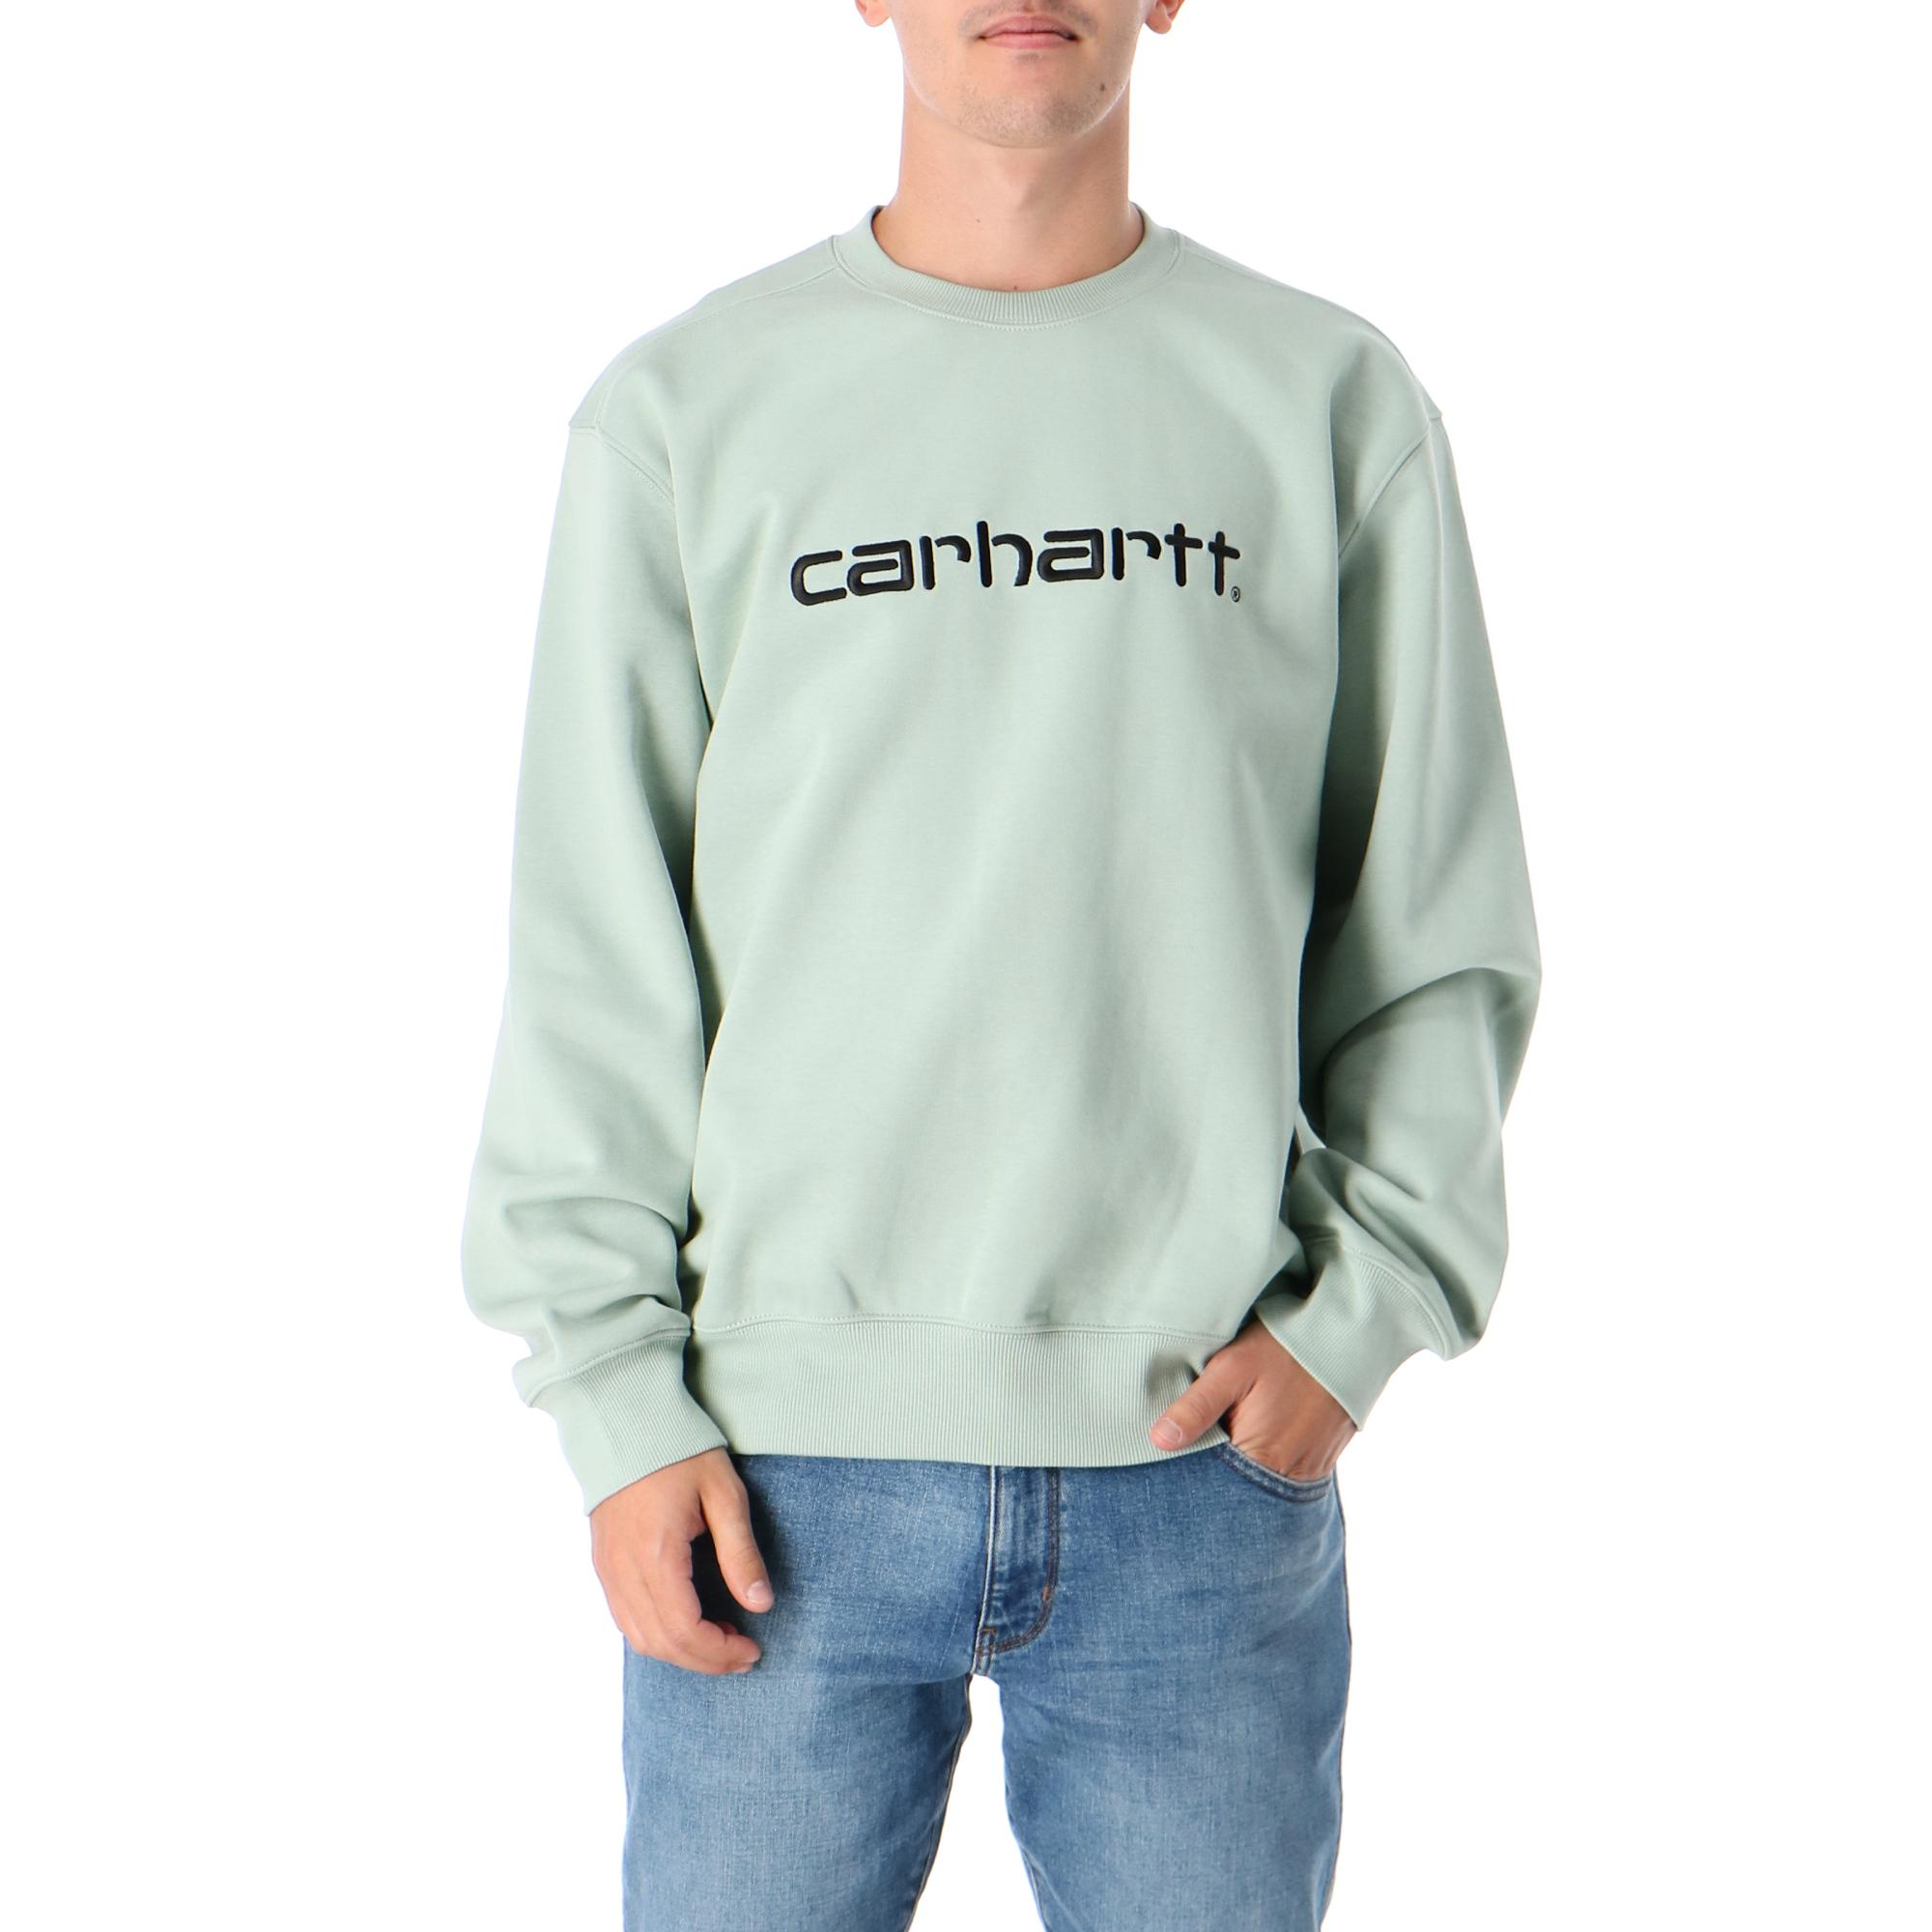 Carhartt Sweatshirt Frosted green black